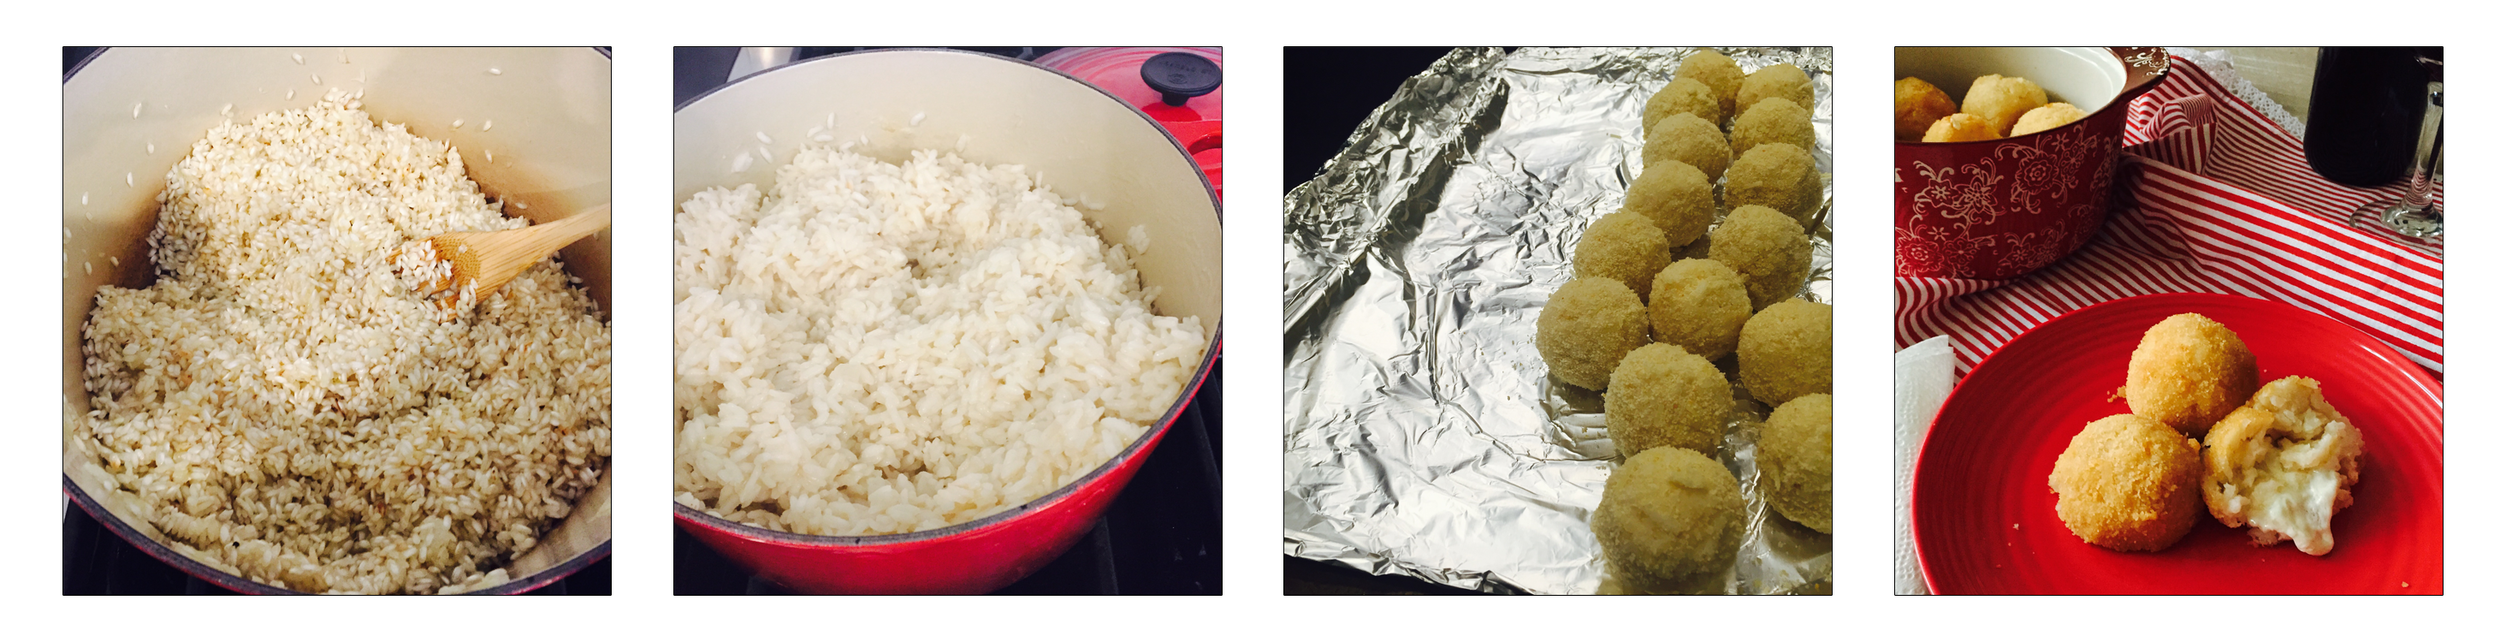 RICE BALLS, STEP BY STEP.